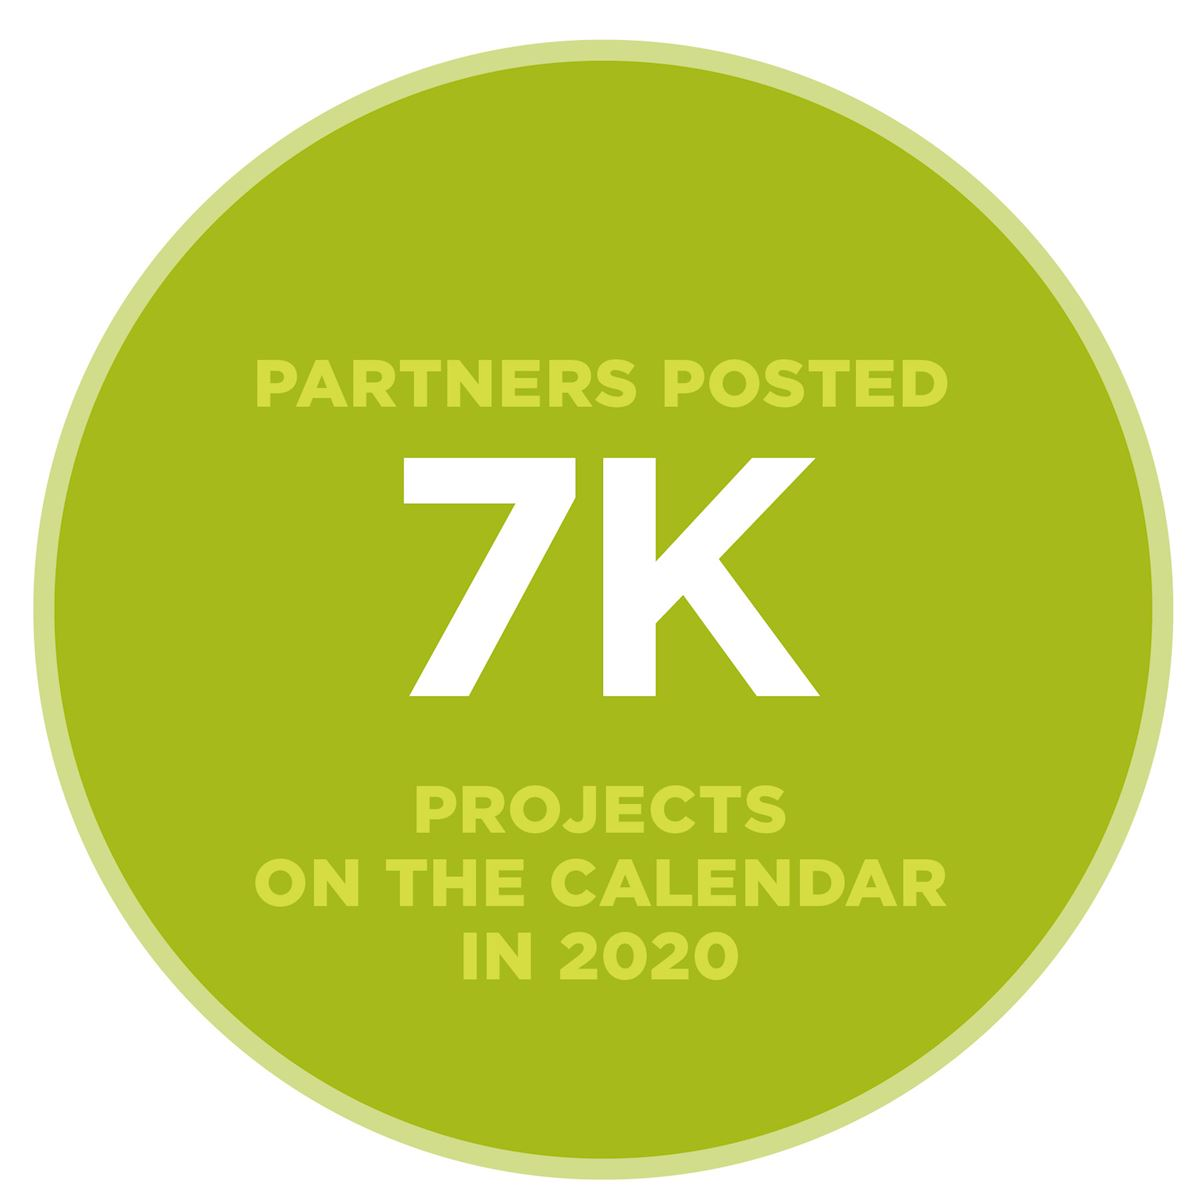 7,000 projects on the calendar in 2020